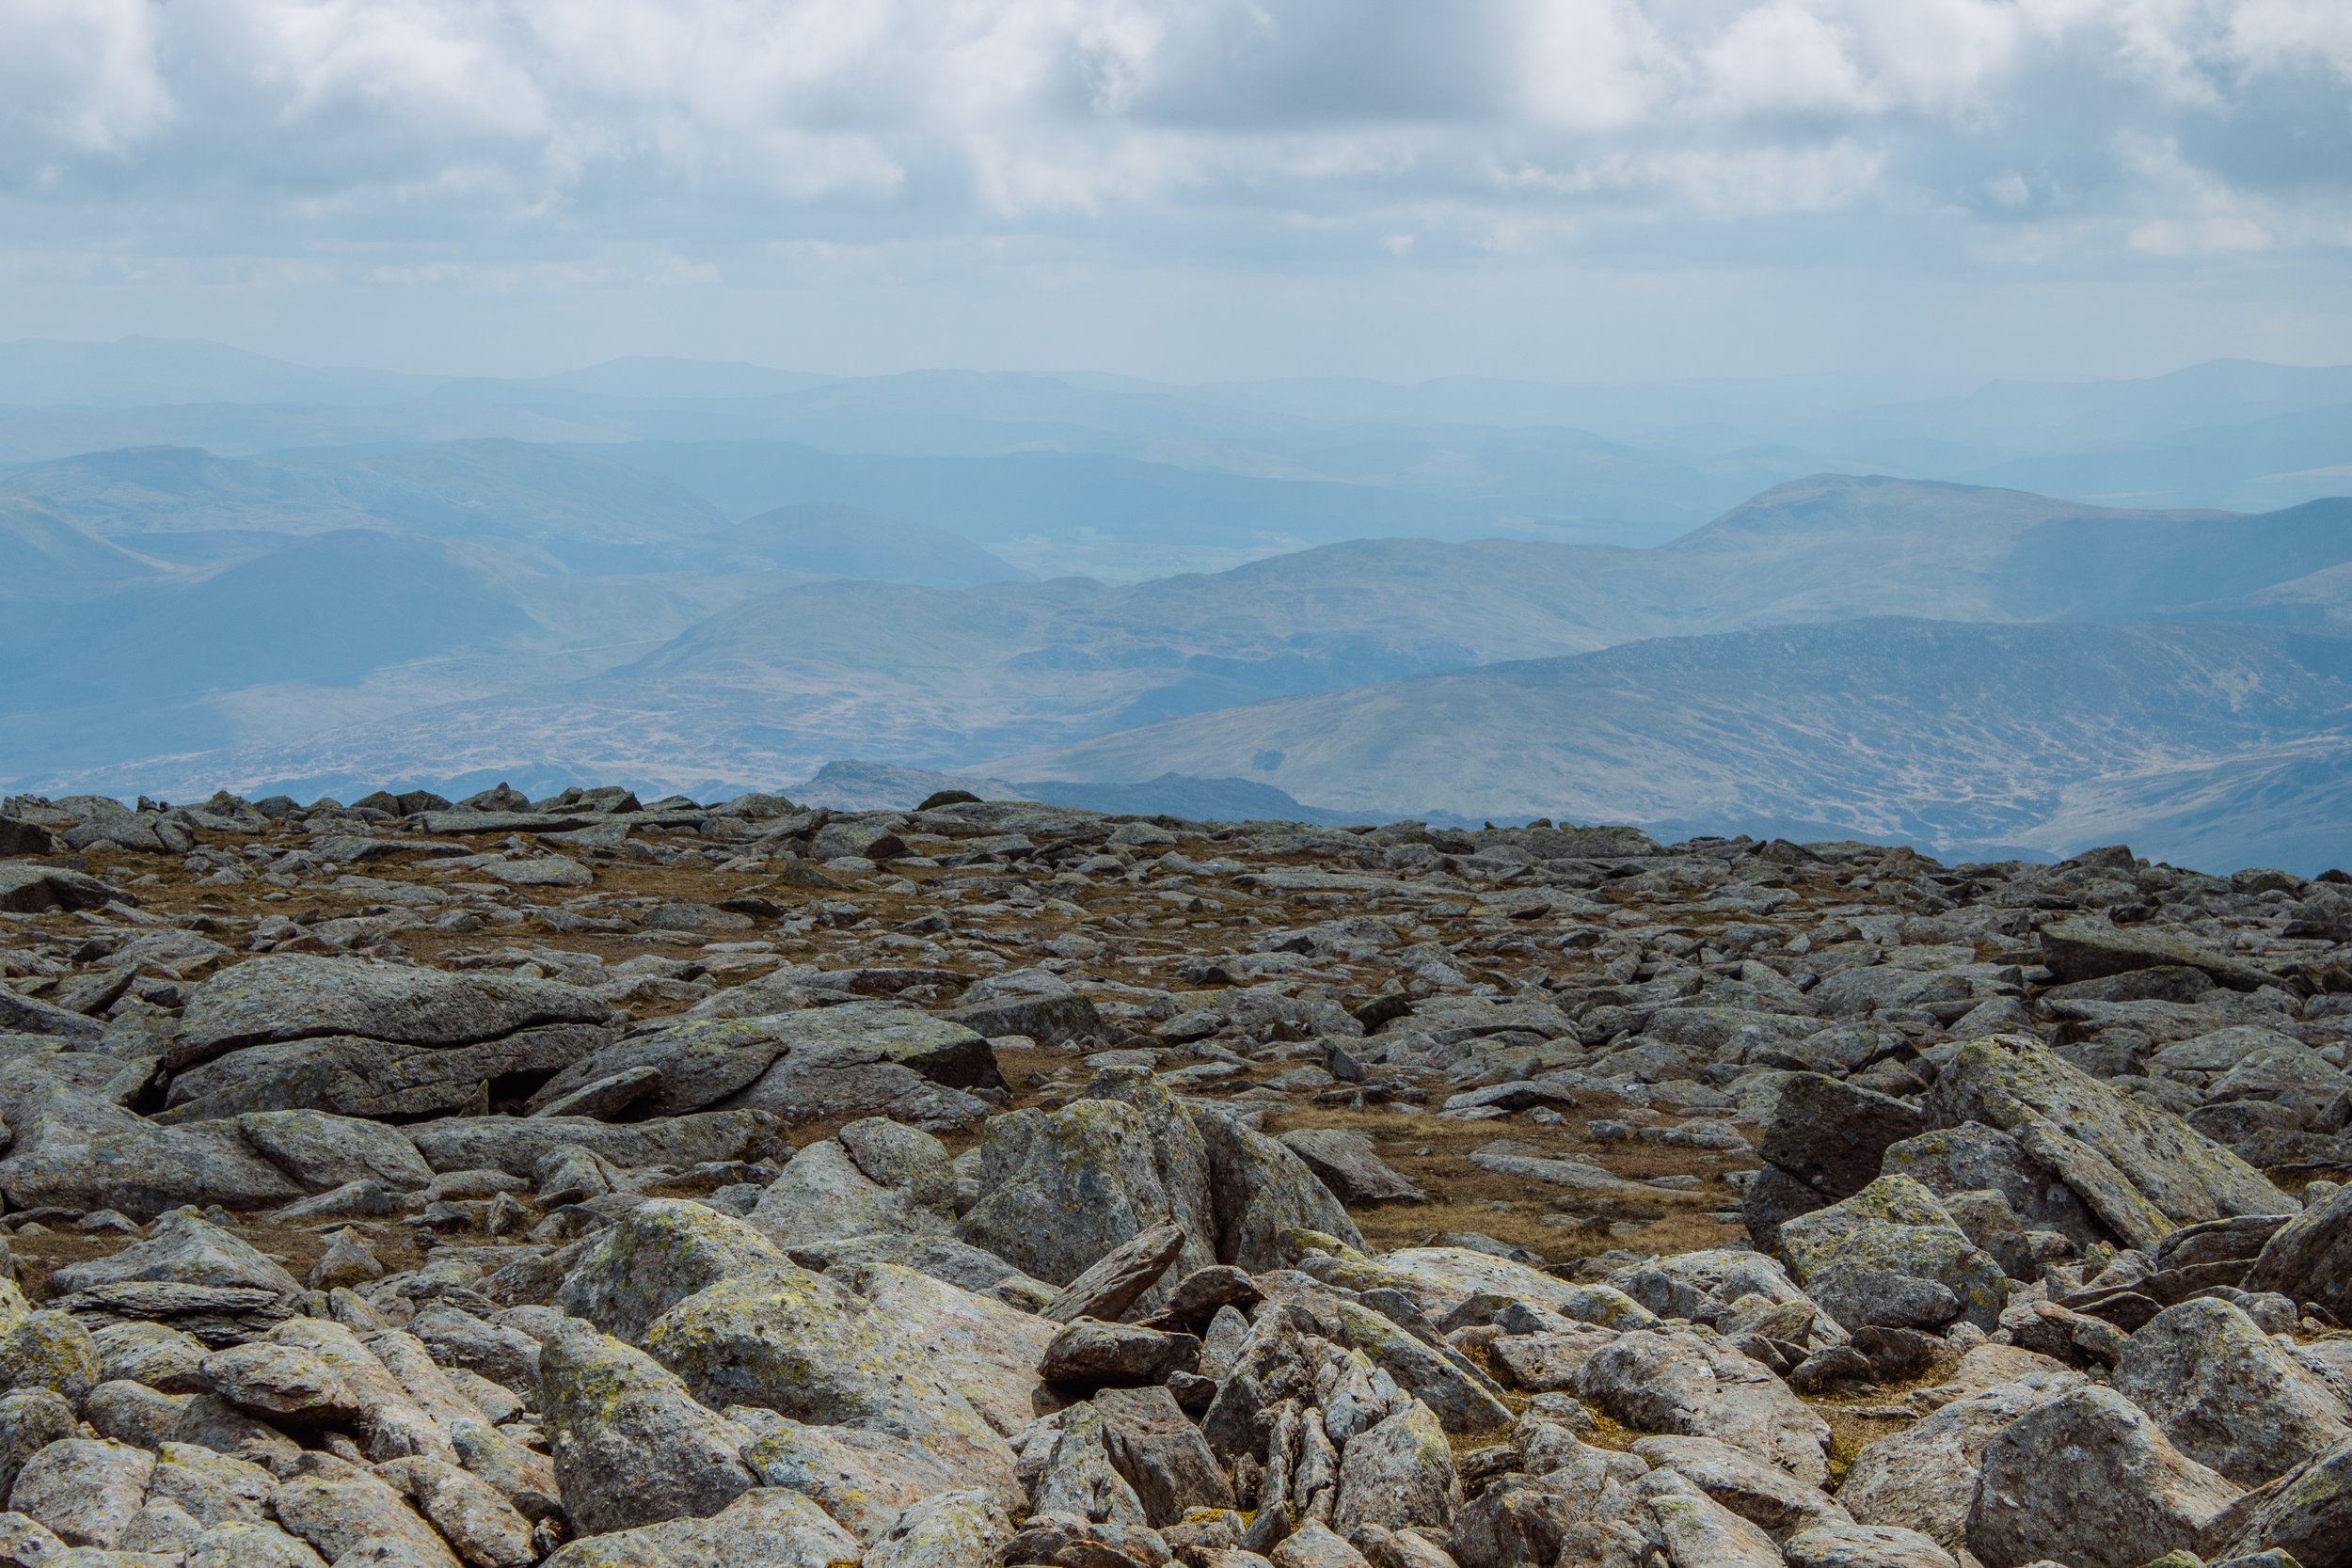 The top of Glyder Fawr is quite flat and very rocky, with some very interesting formations not pictured